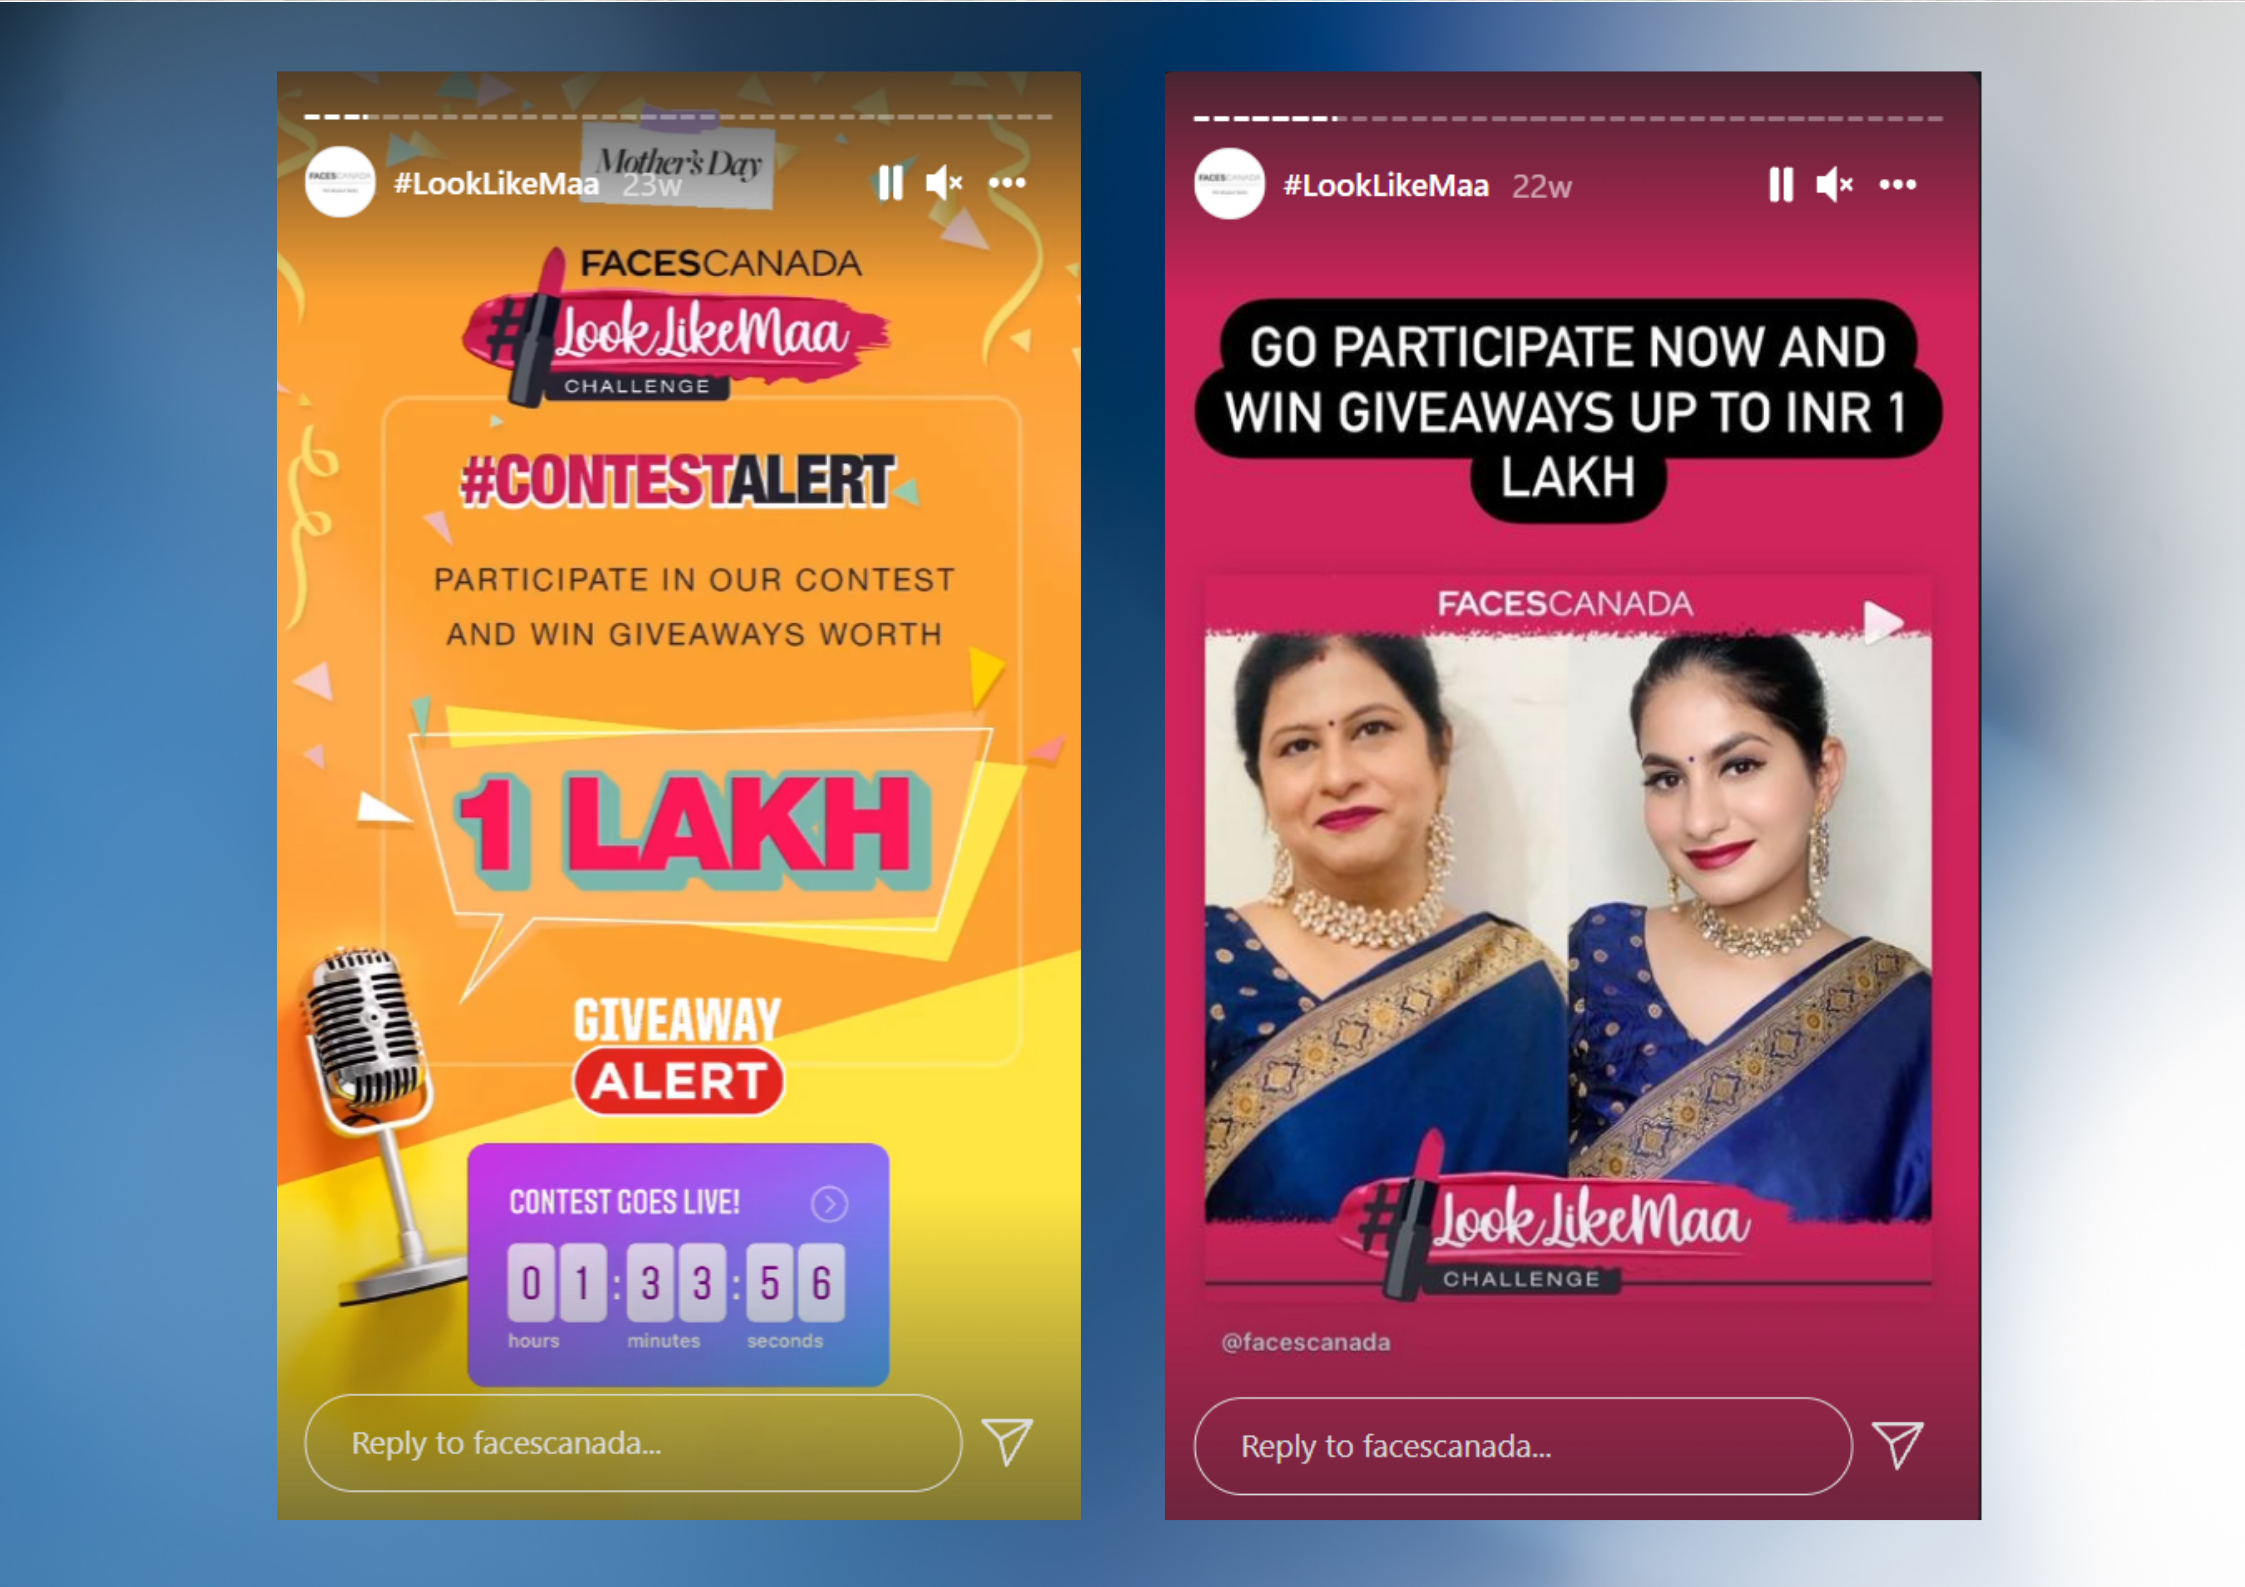 Instagram Stories for promotions